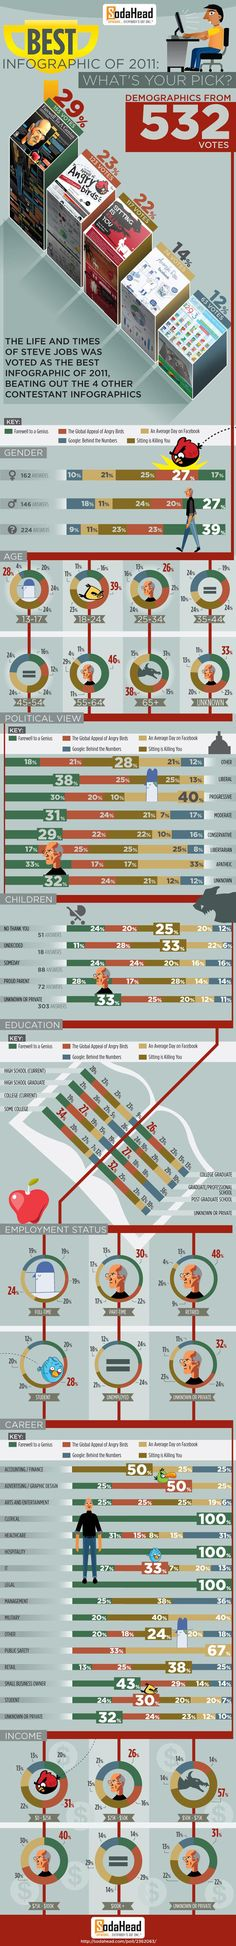 An infographic about the best infographics of 2011 (confused?)